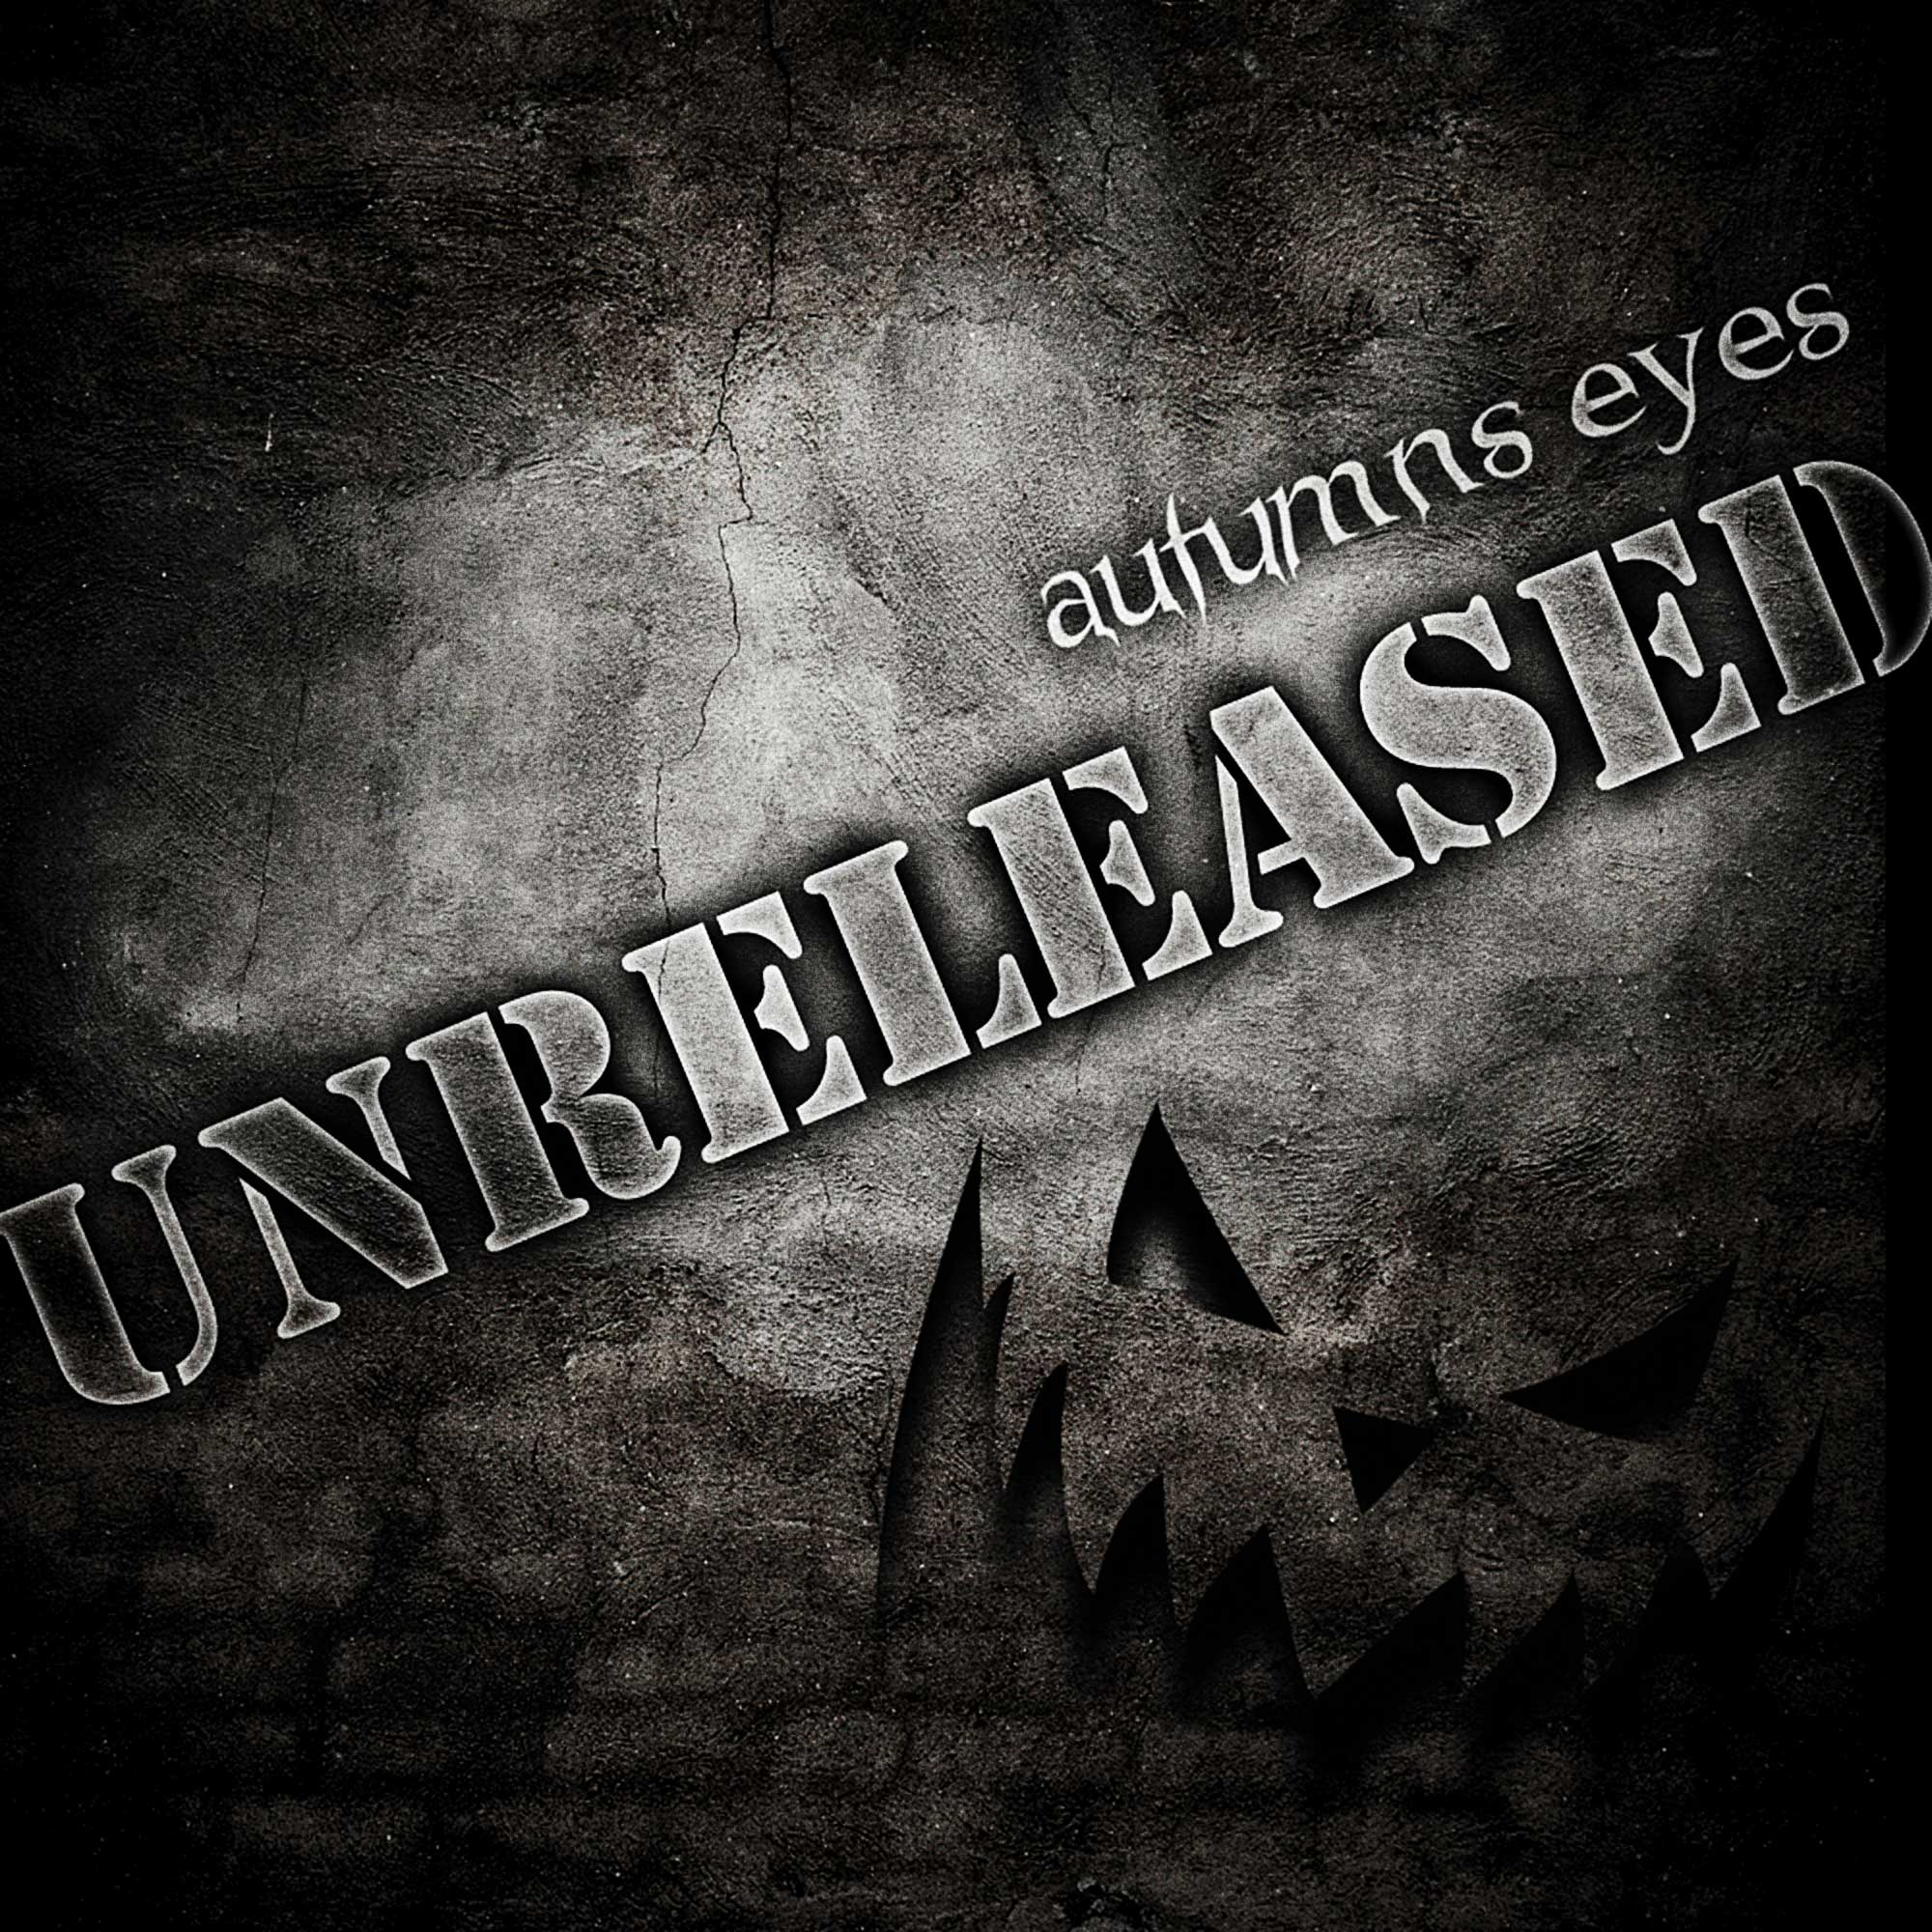 Autumns Eyes - Unreleased